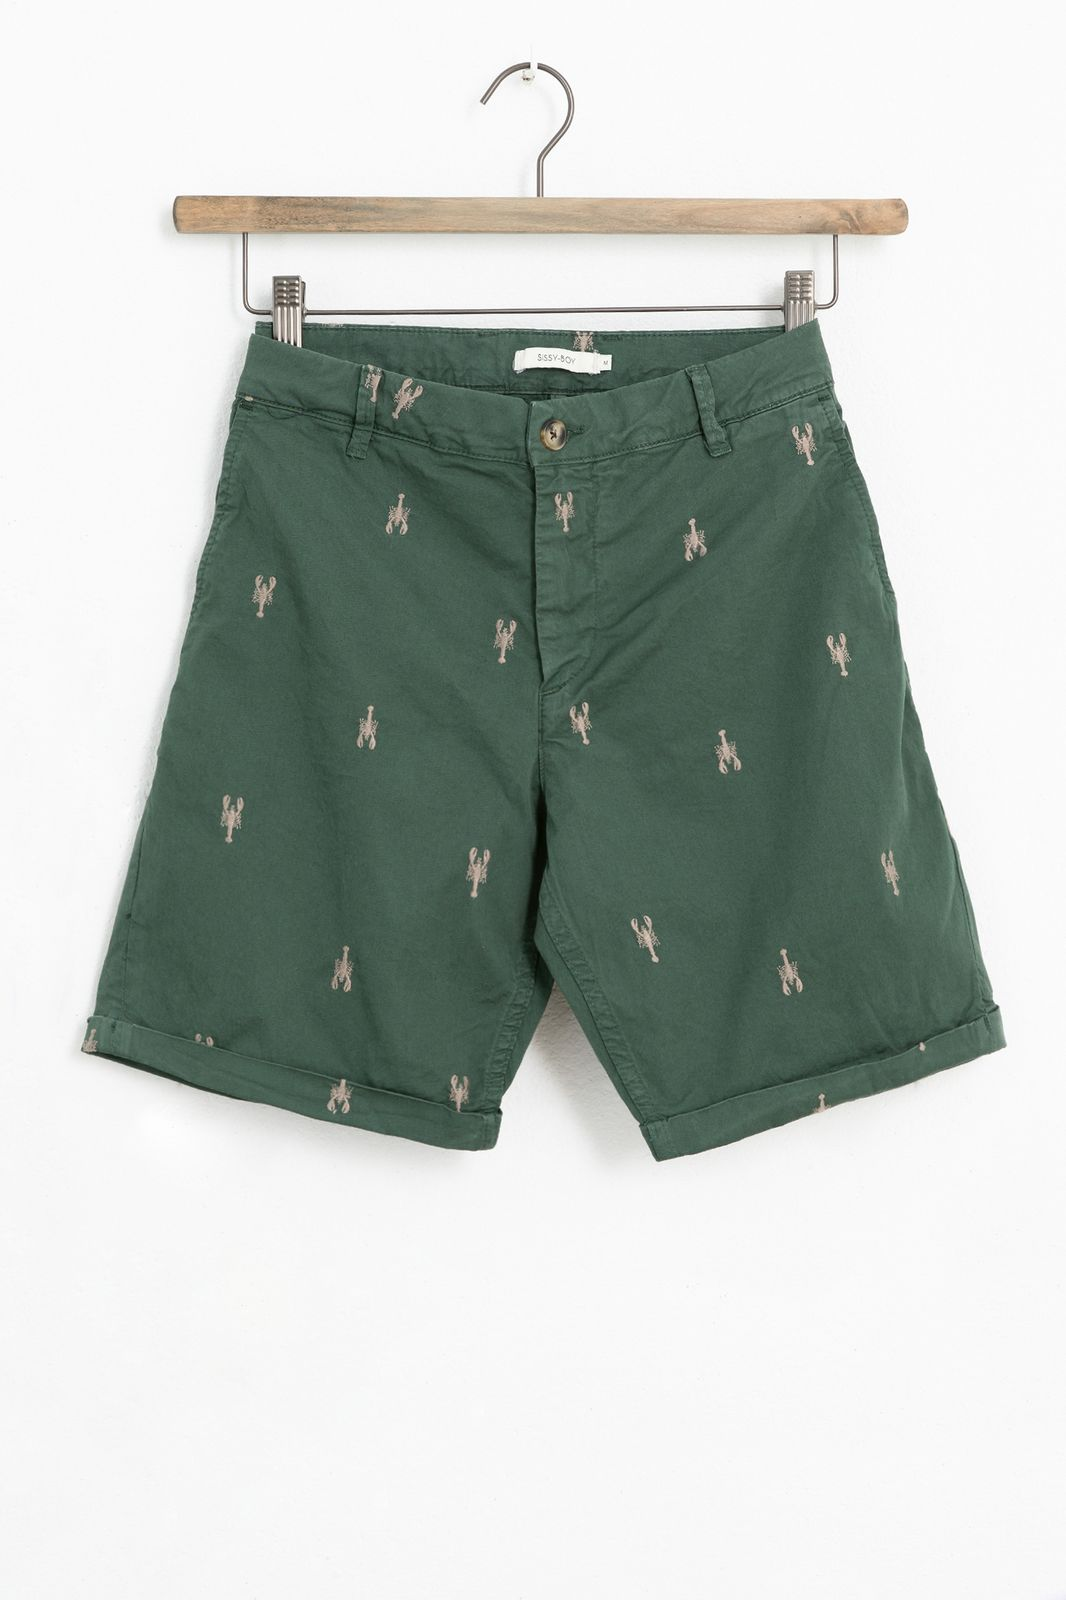 Groene chino shorts met all over kreeft embroidery